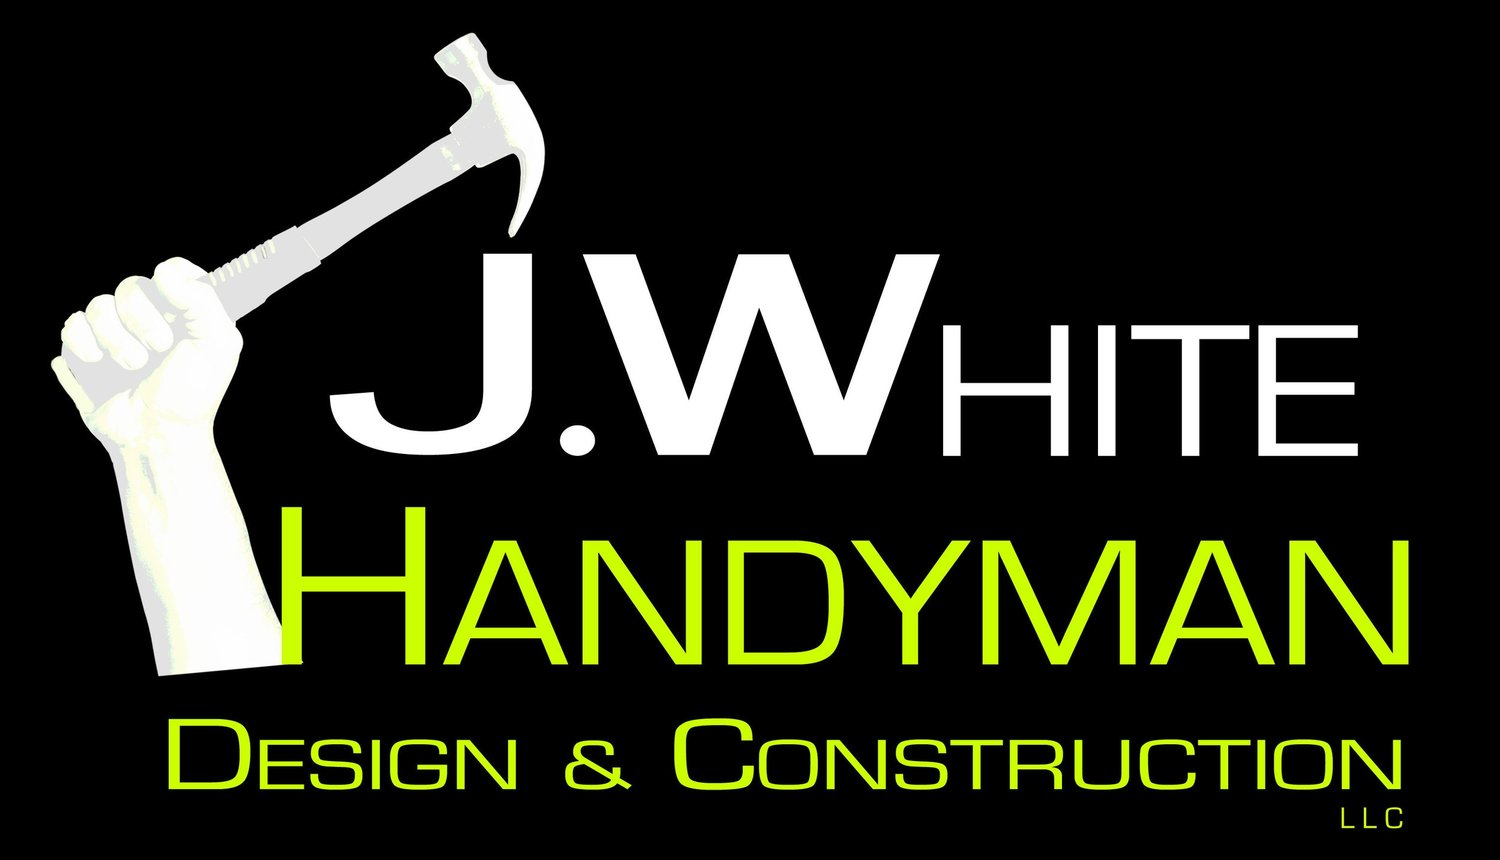 J. White Handyman Design & Construction